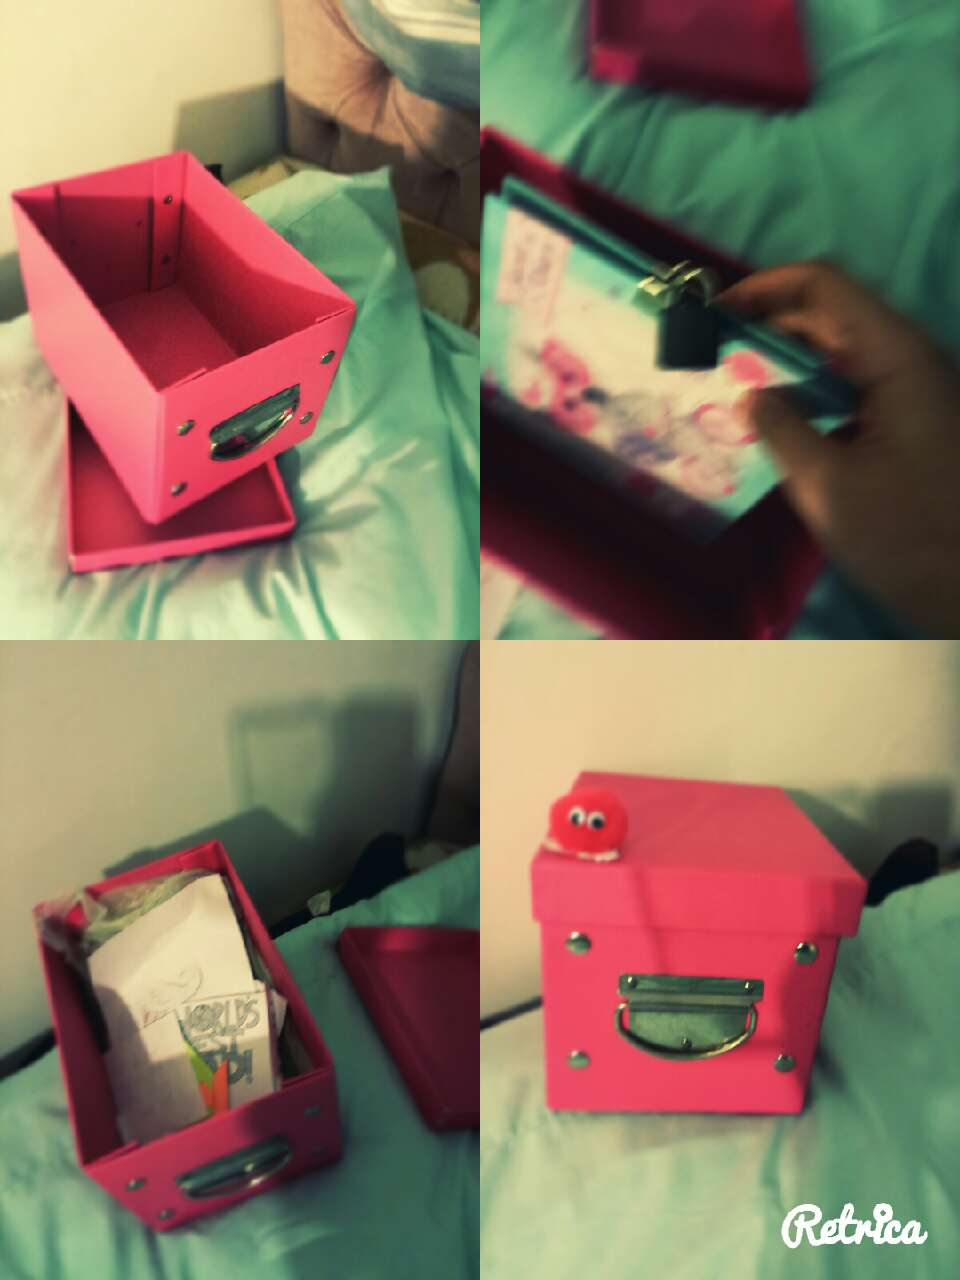 1.i got this box from the pound store. 2. put all ur secret stuff inside.